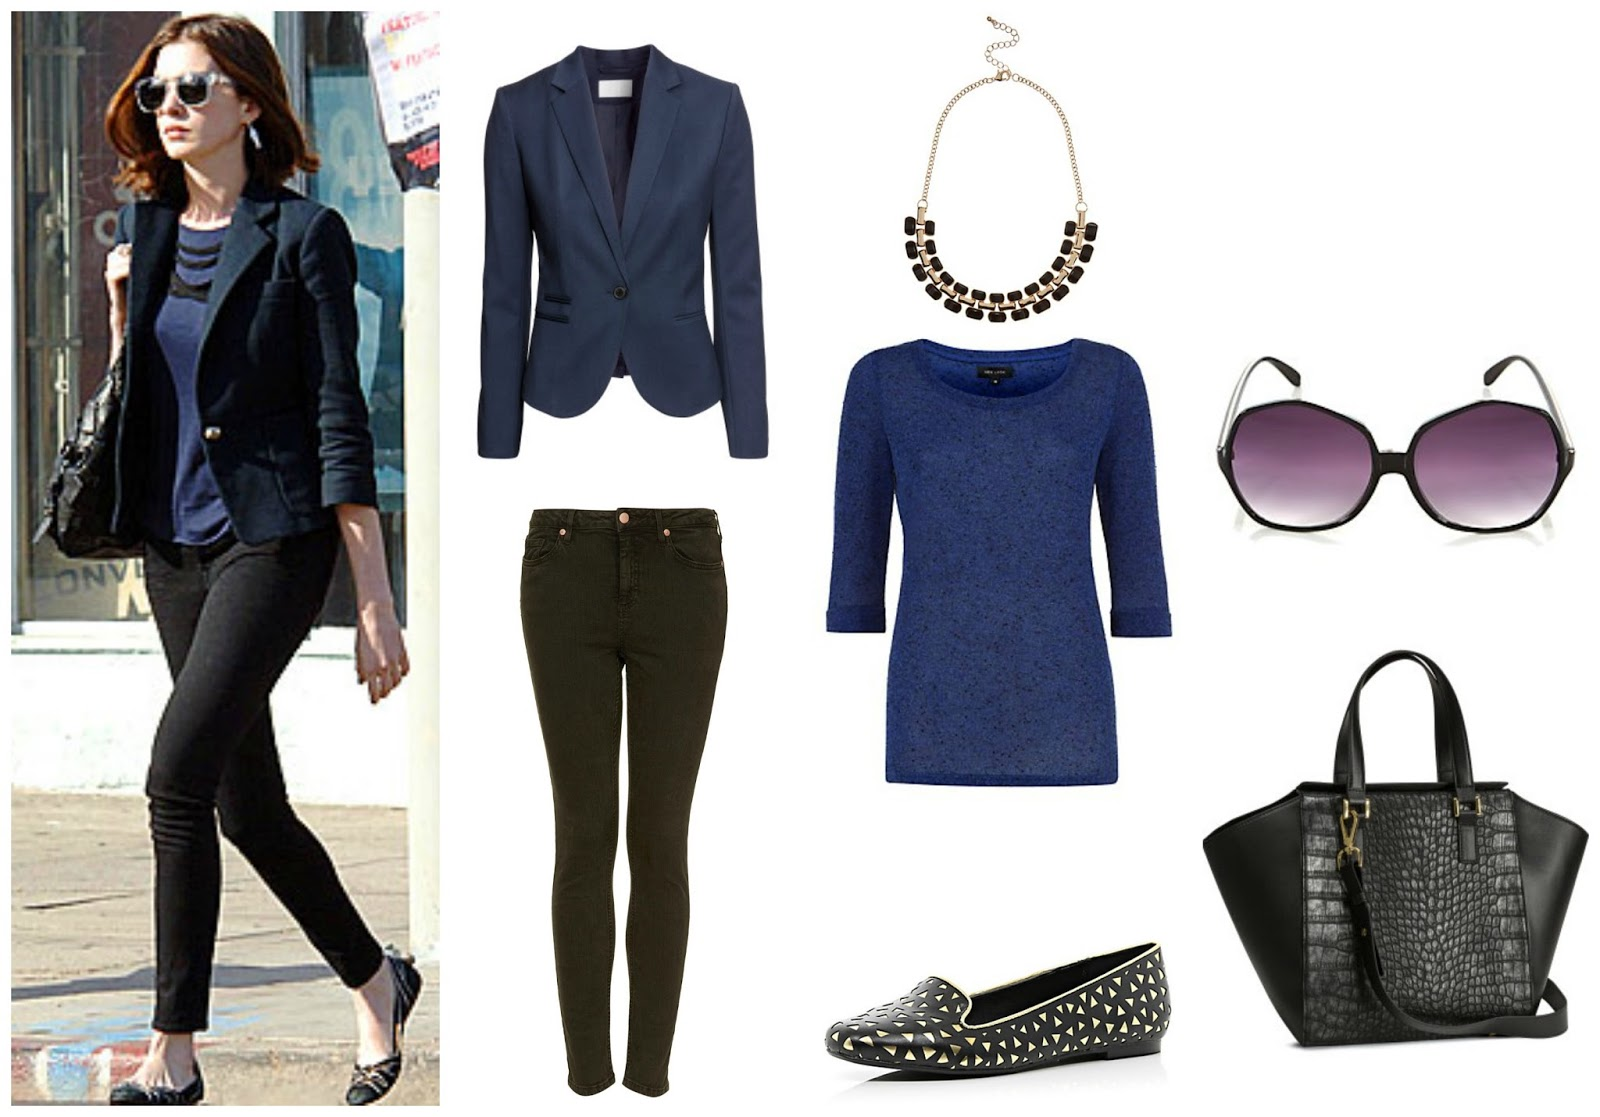 A collage of Anne Hathaway's casual style